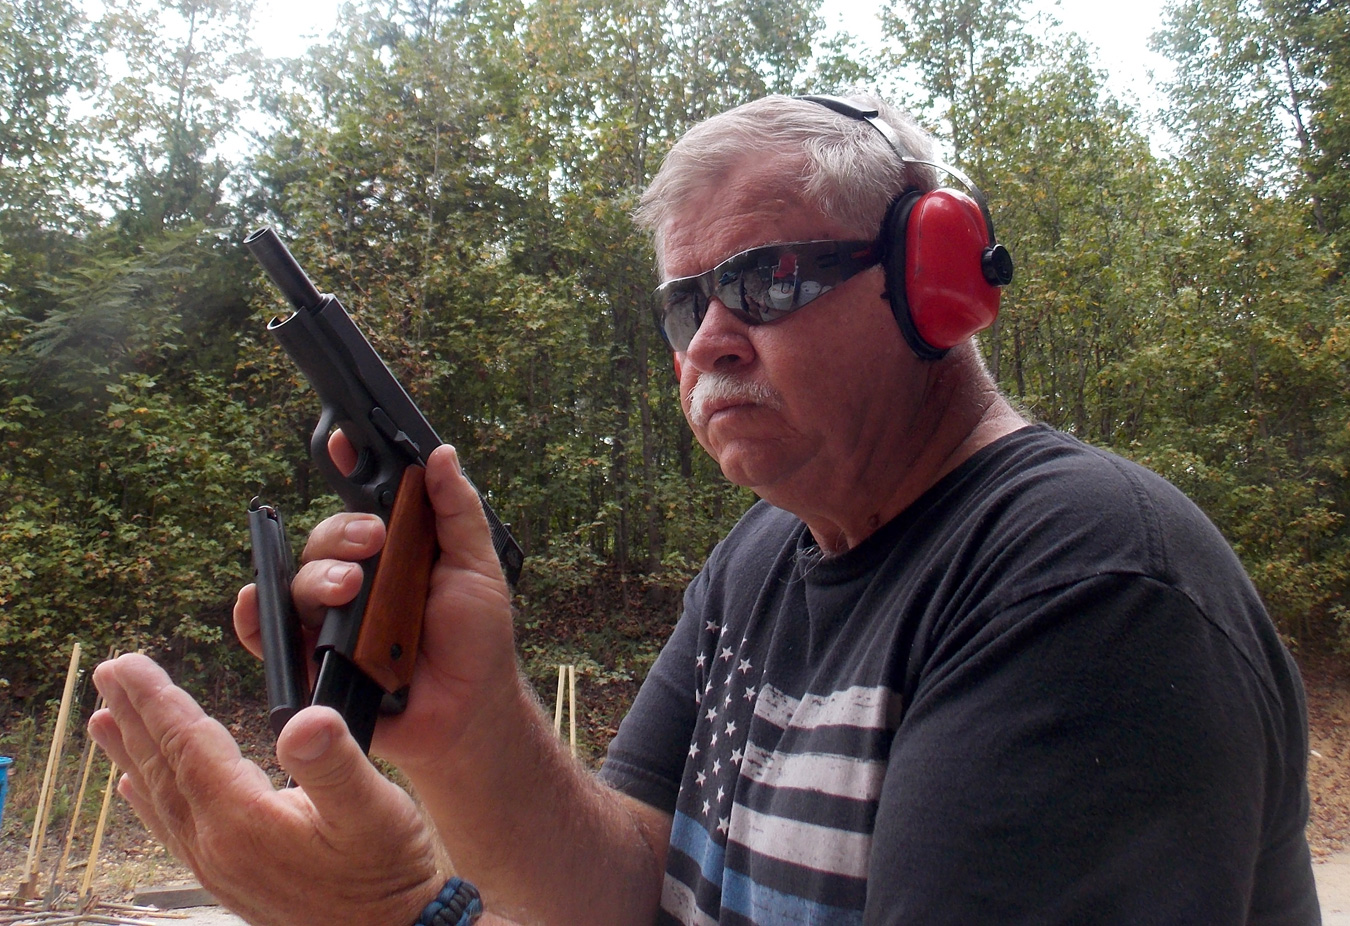 Inserting a magazine into a 1911 pistol